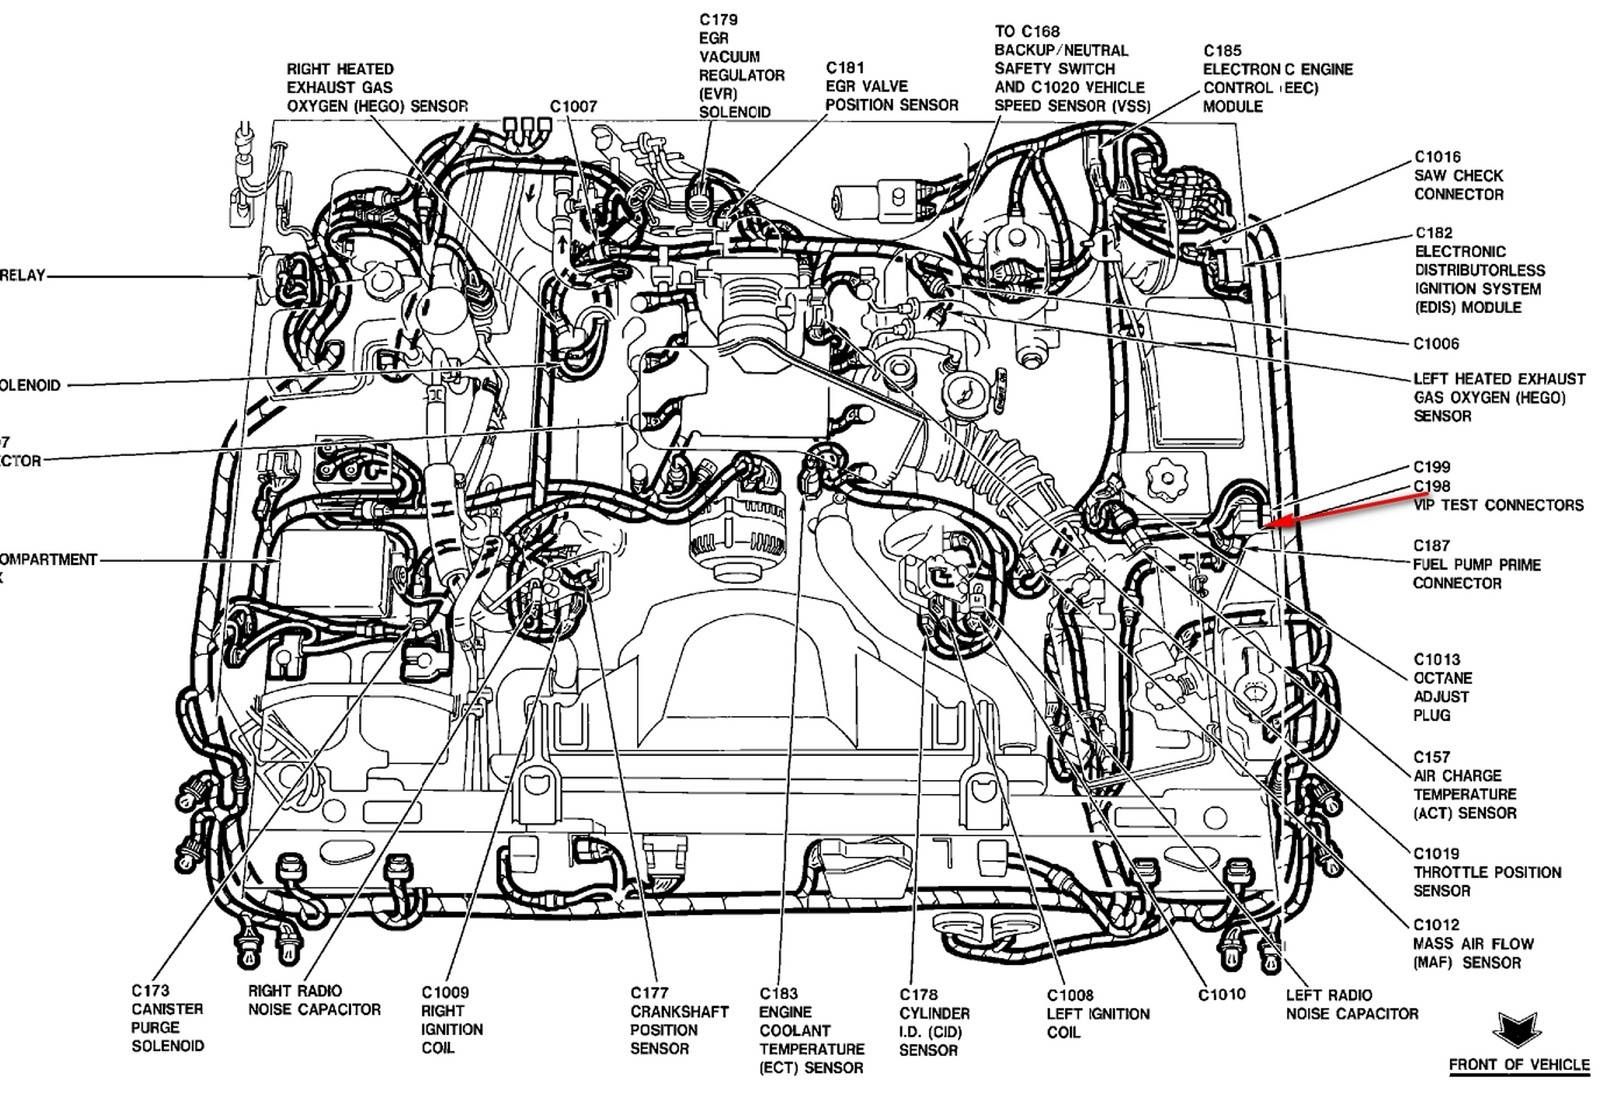 2003 Audi Tt Engine Diagram additionally Ford 400 Pcv Valve Location further Screechza Night furthermore Showthread besides Eva marie saint 06. on subaru wiring diagrams for coil pack